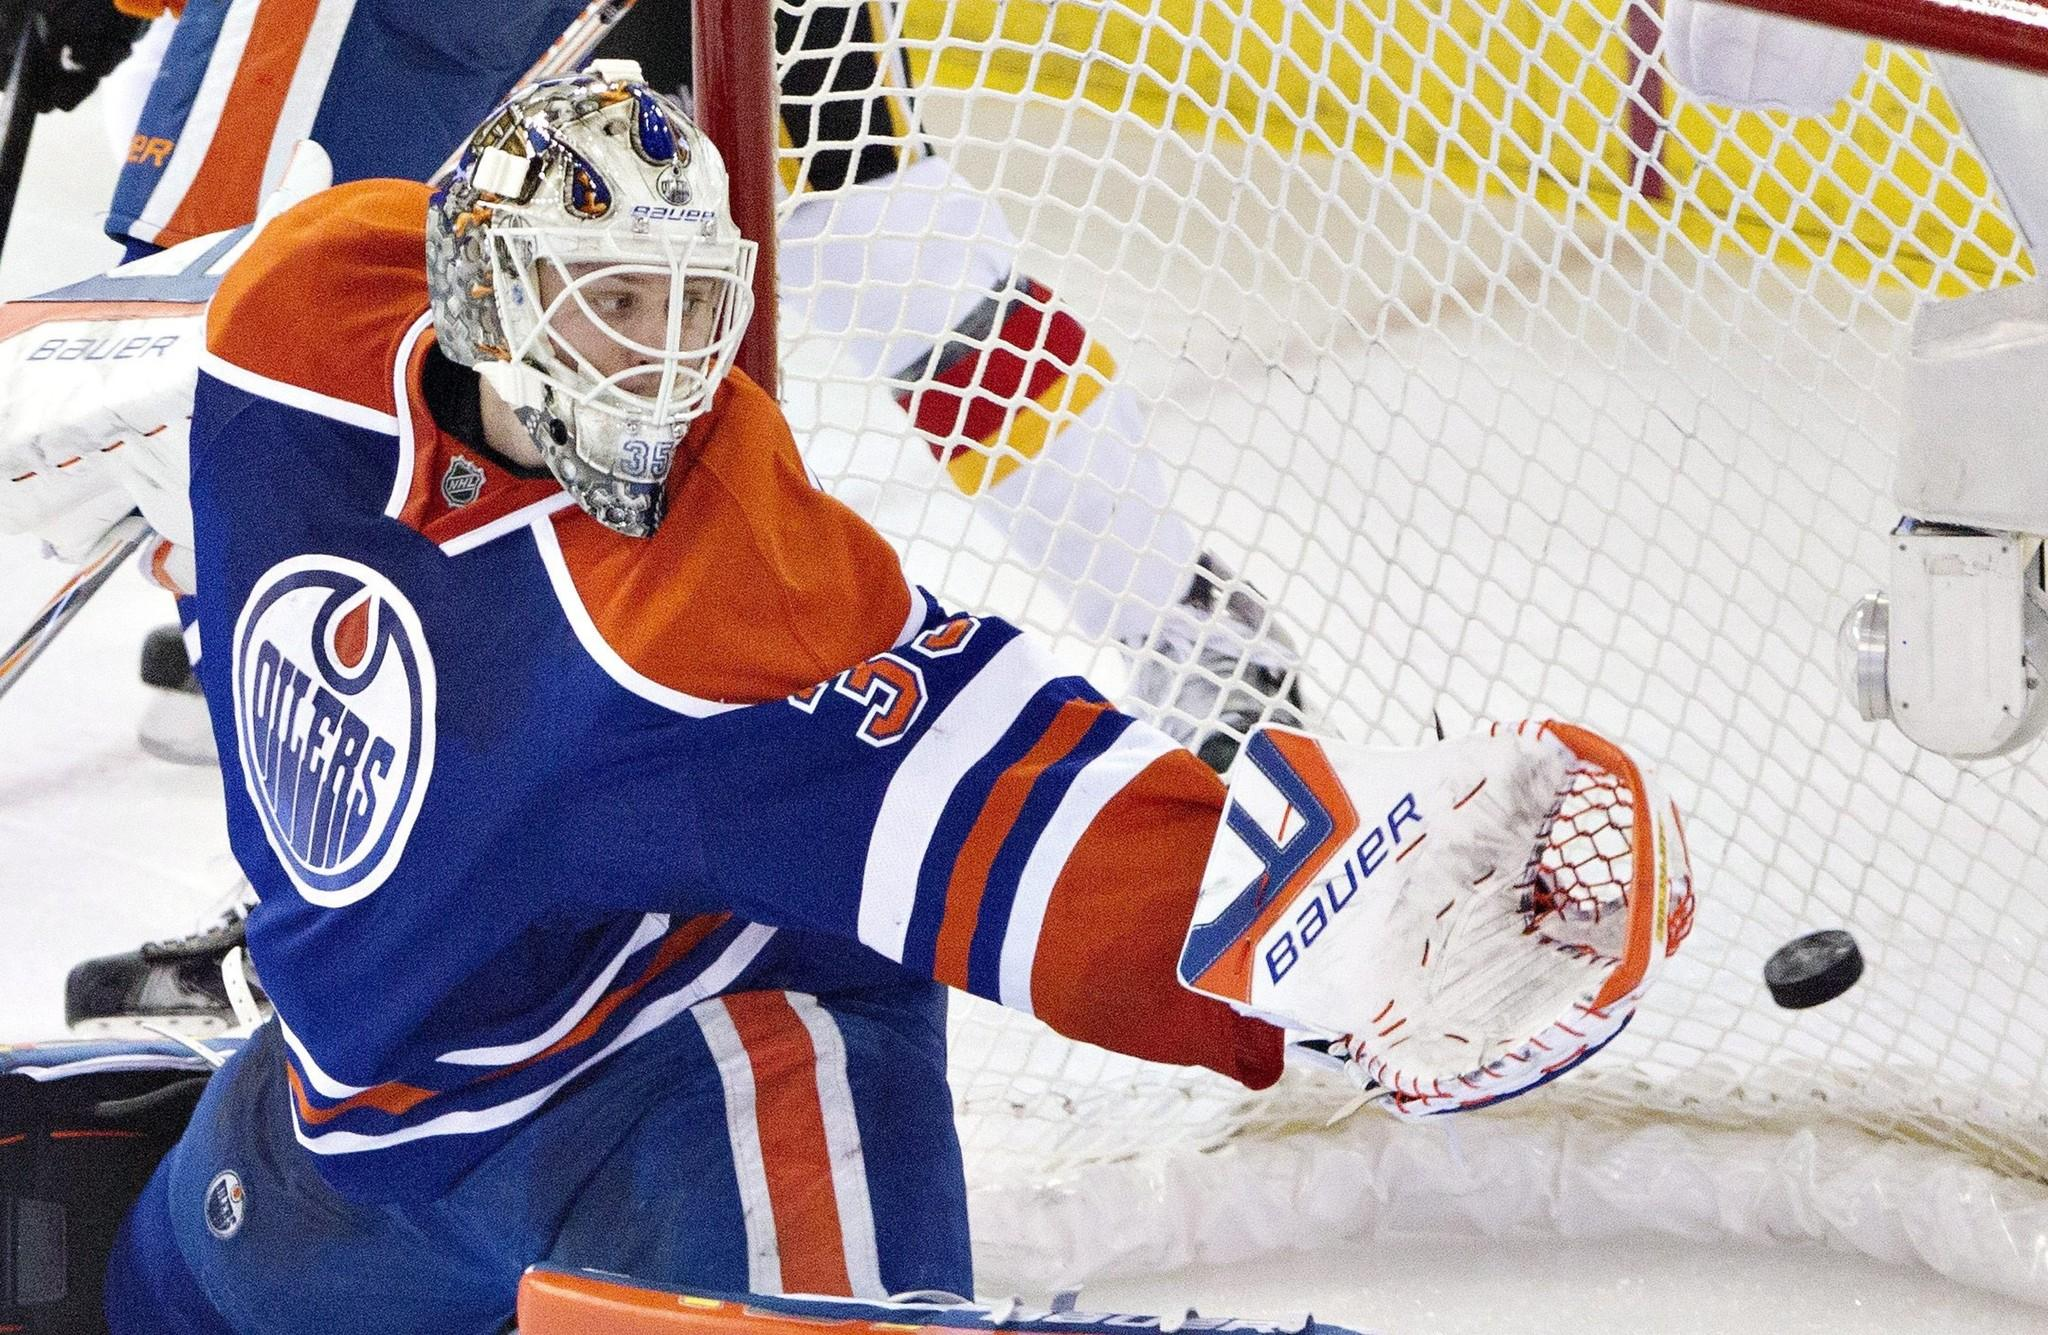 Former Ducks goalie Viktor Fasth has been splitting time in the net with former Kings goalie Ben Scrivens, but won't face his former team when they play Friday at Rexall Place in Edmonton.